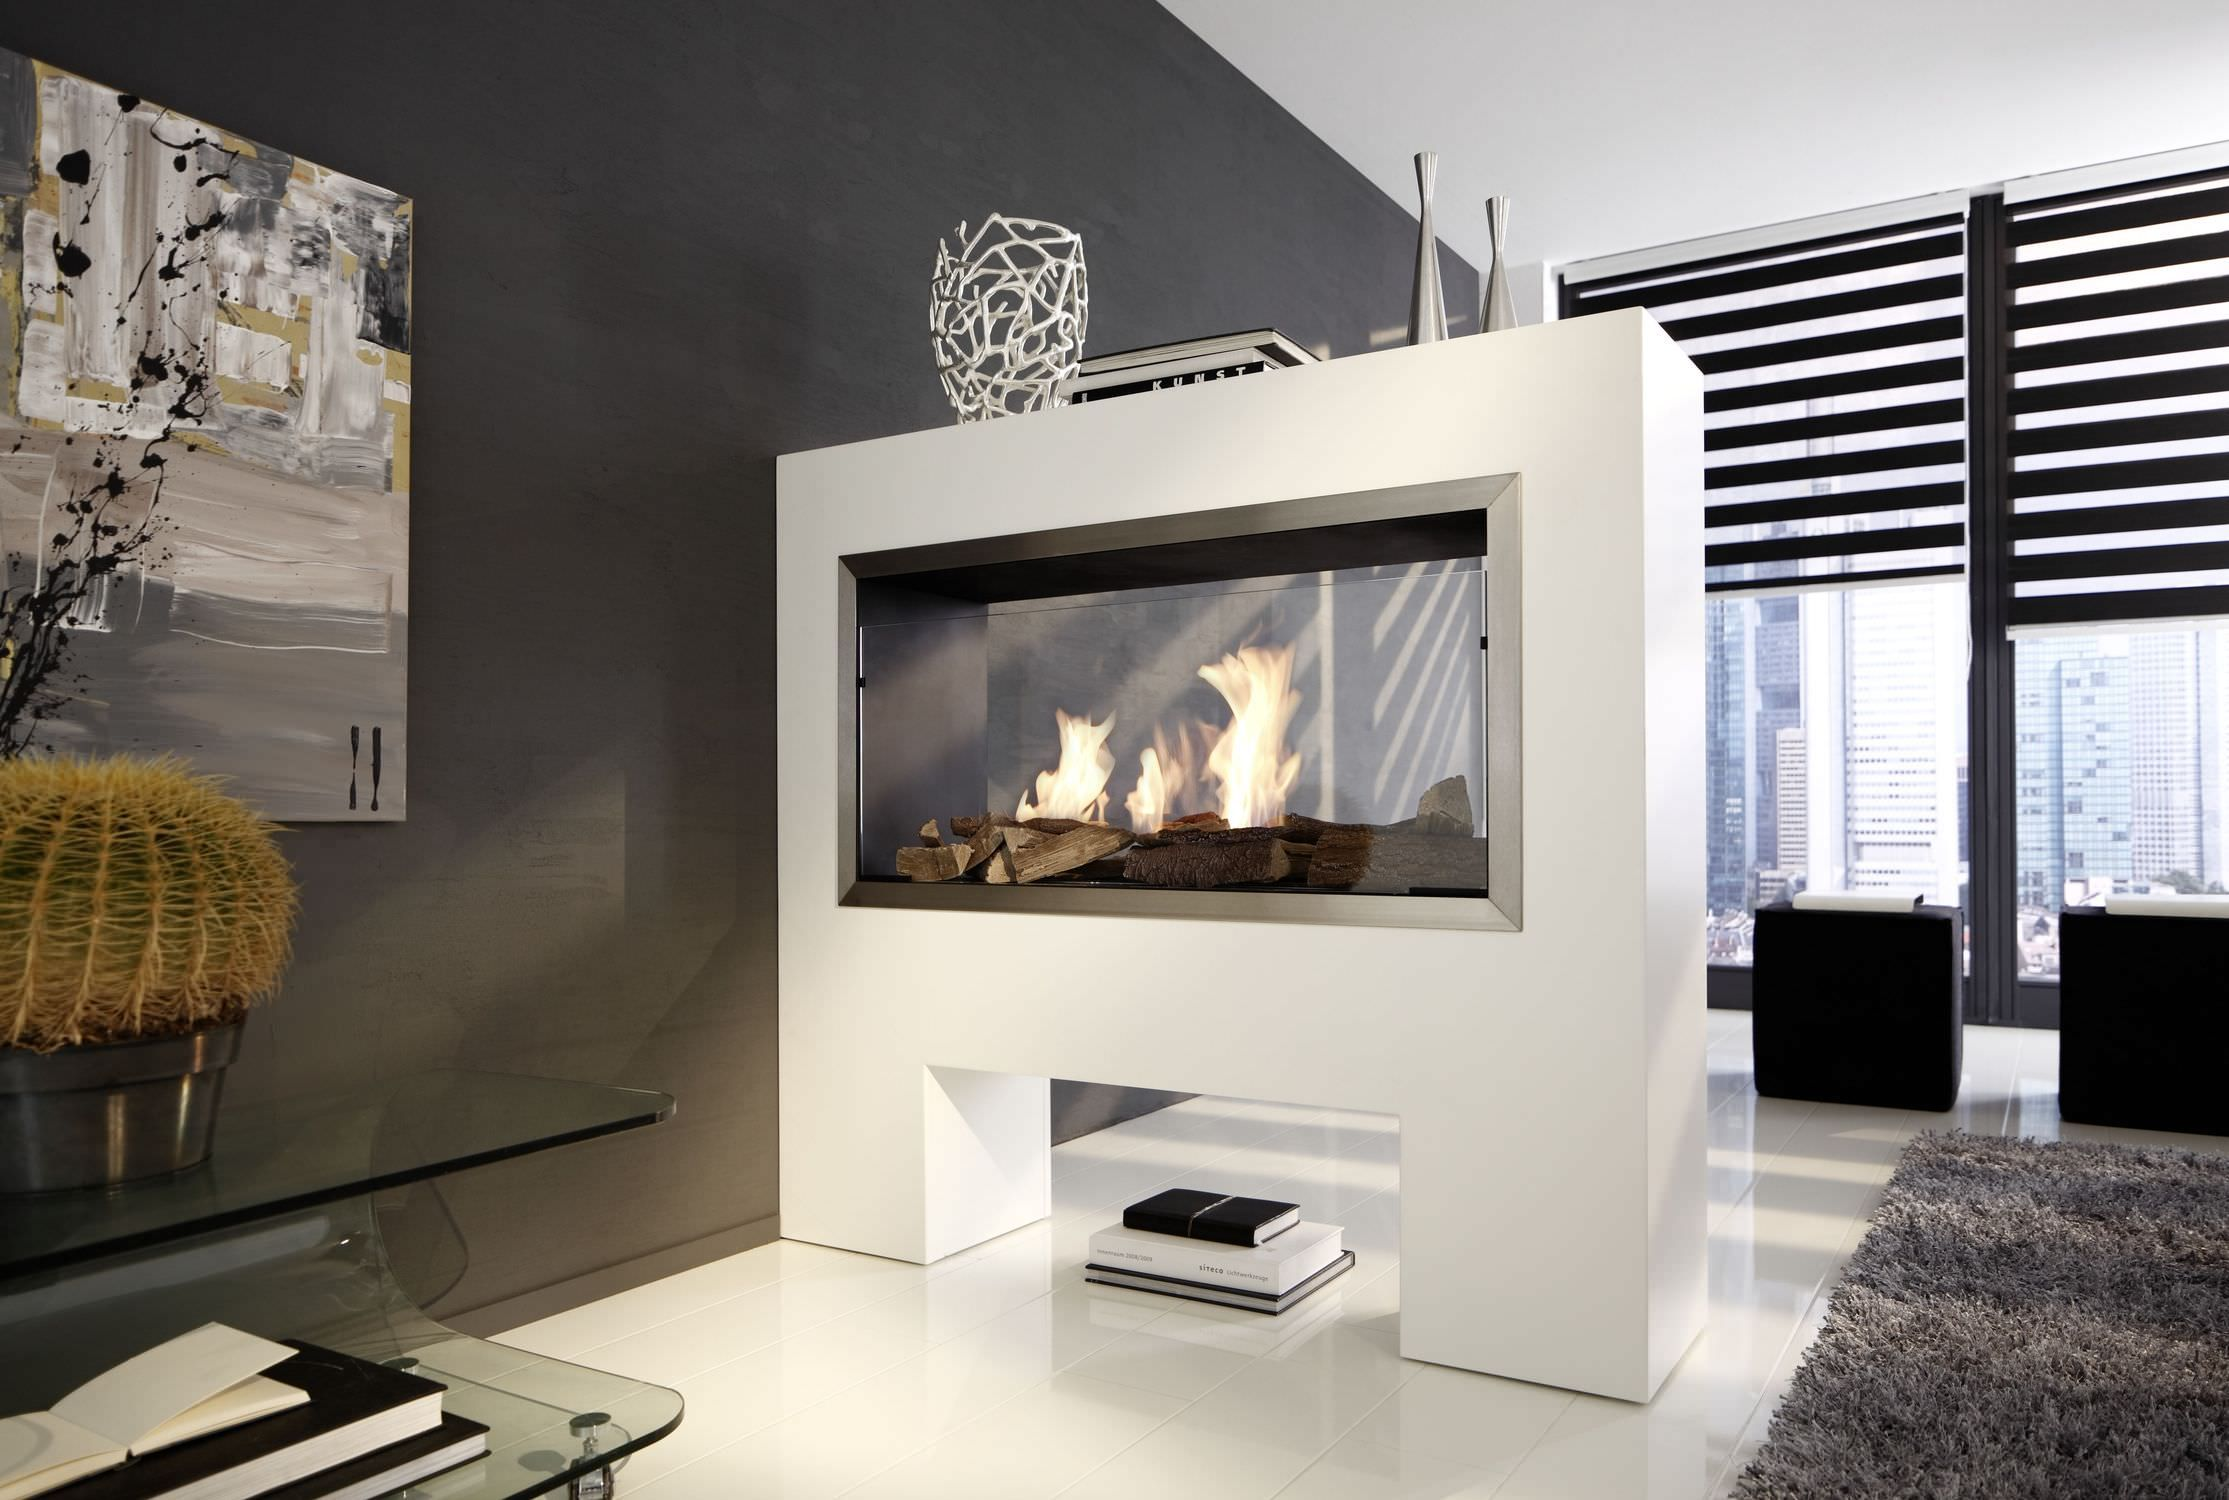 2 Sided Electric Fireplace Insert Fireplace Design Modern Room